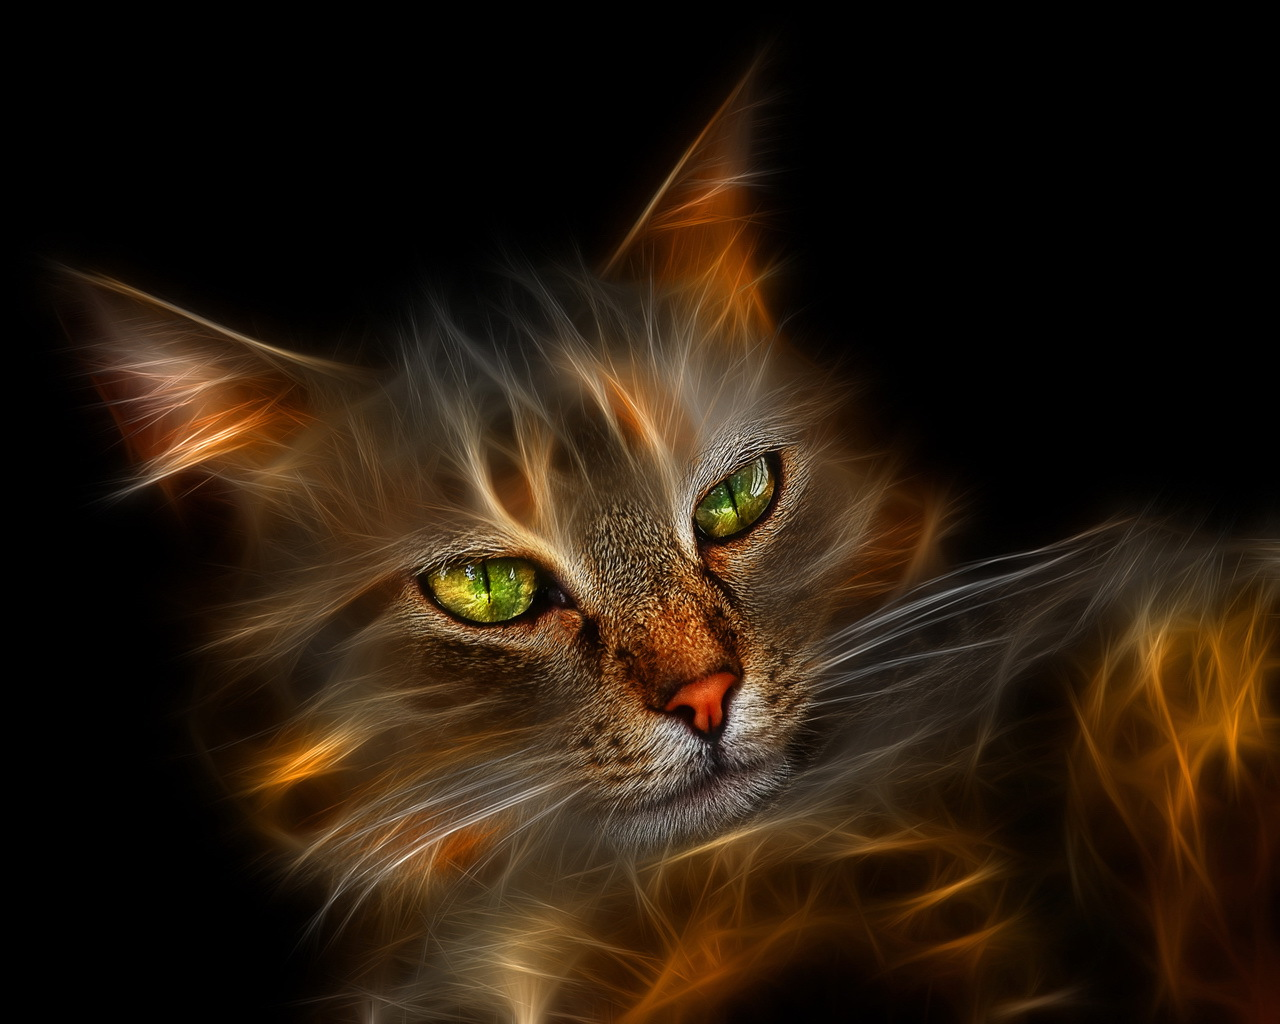 Fire cat wallpapers and images   wallpapers pictures photos 1280x1024